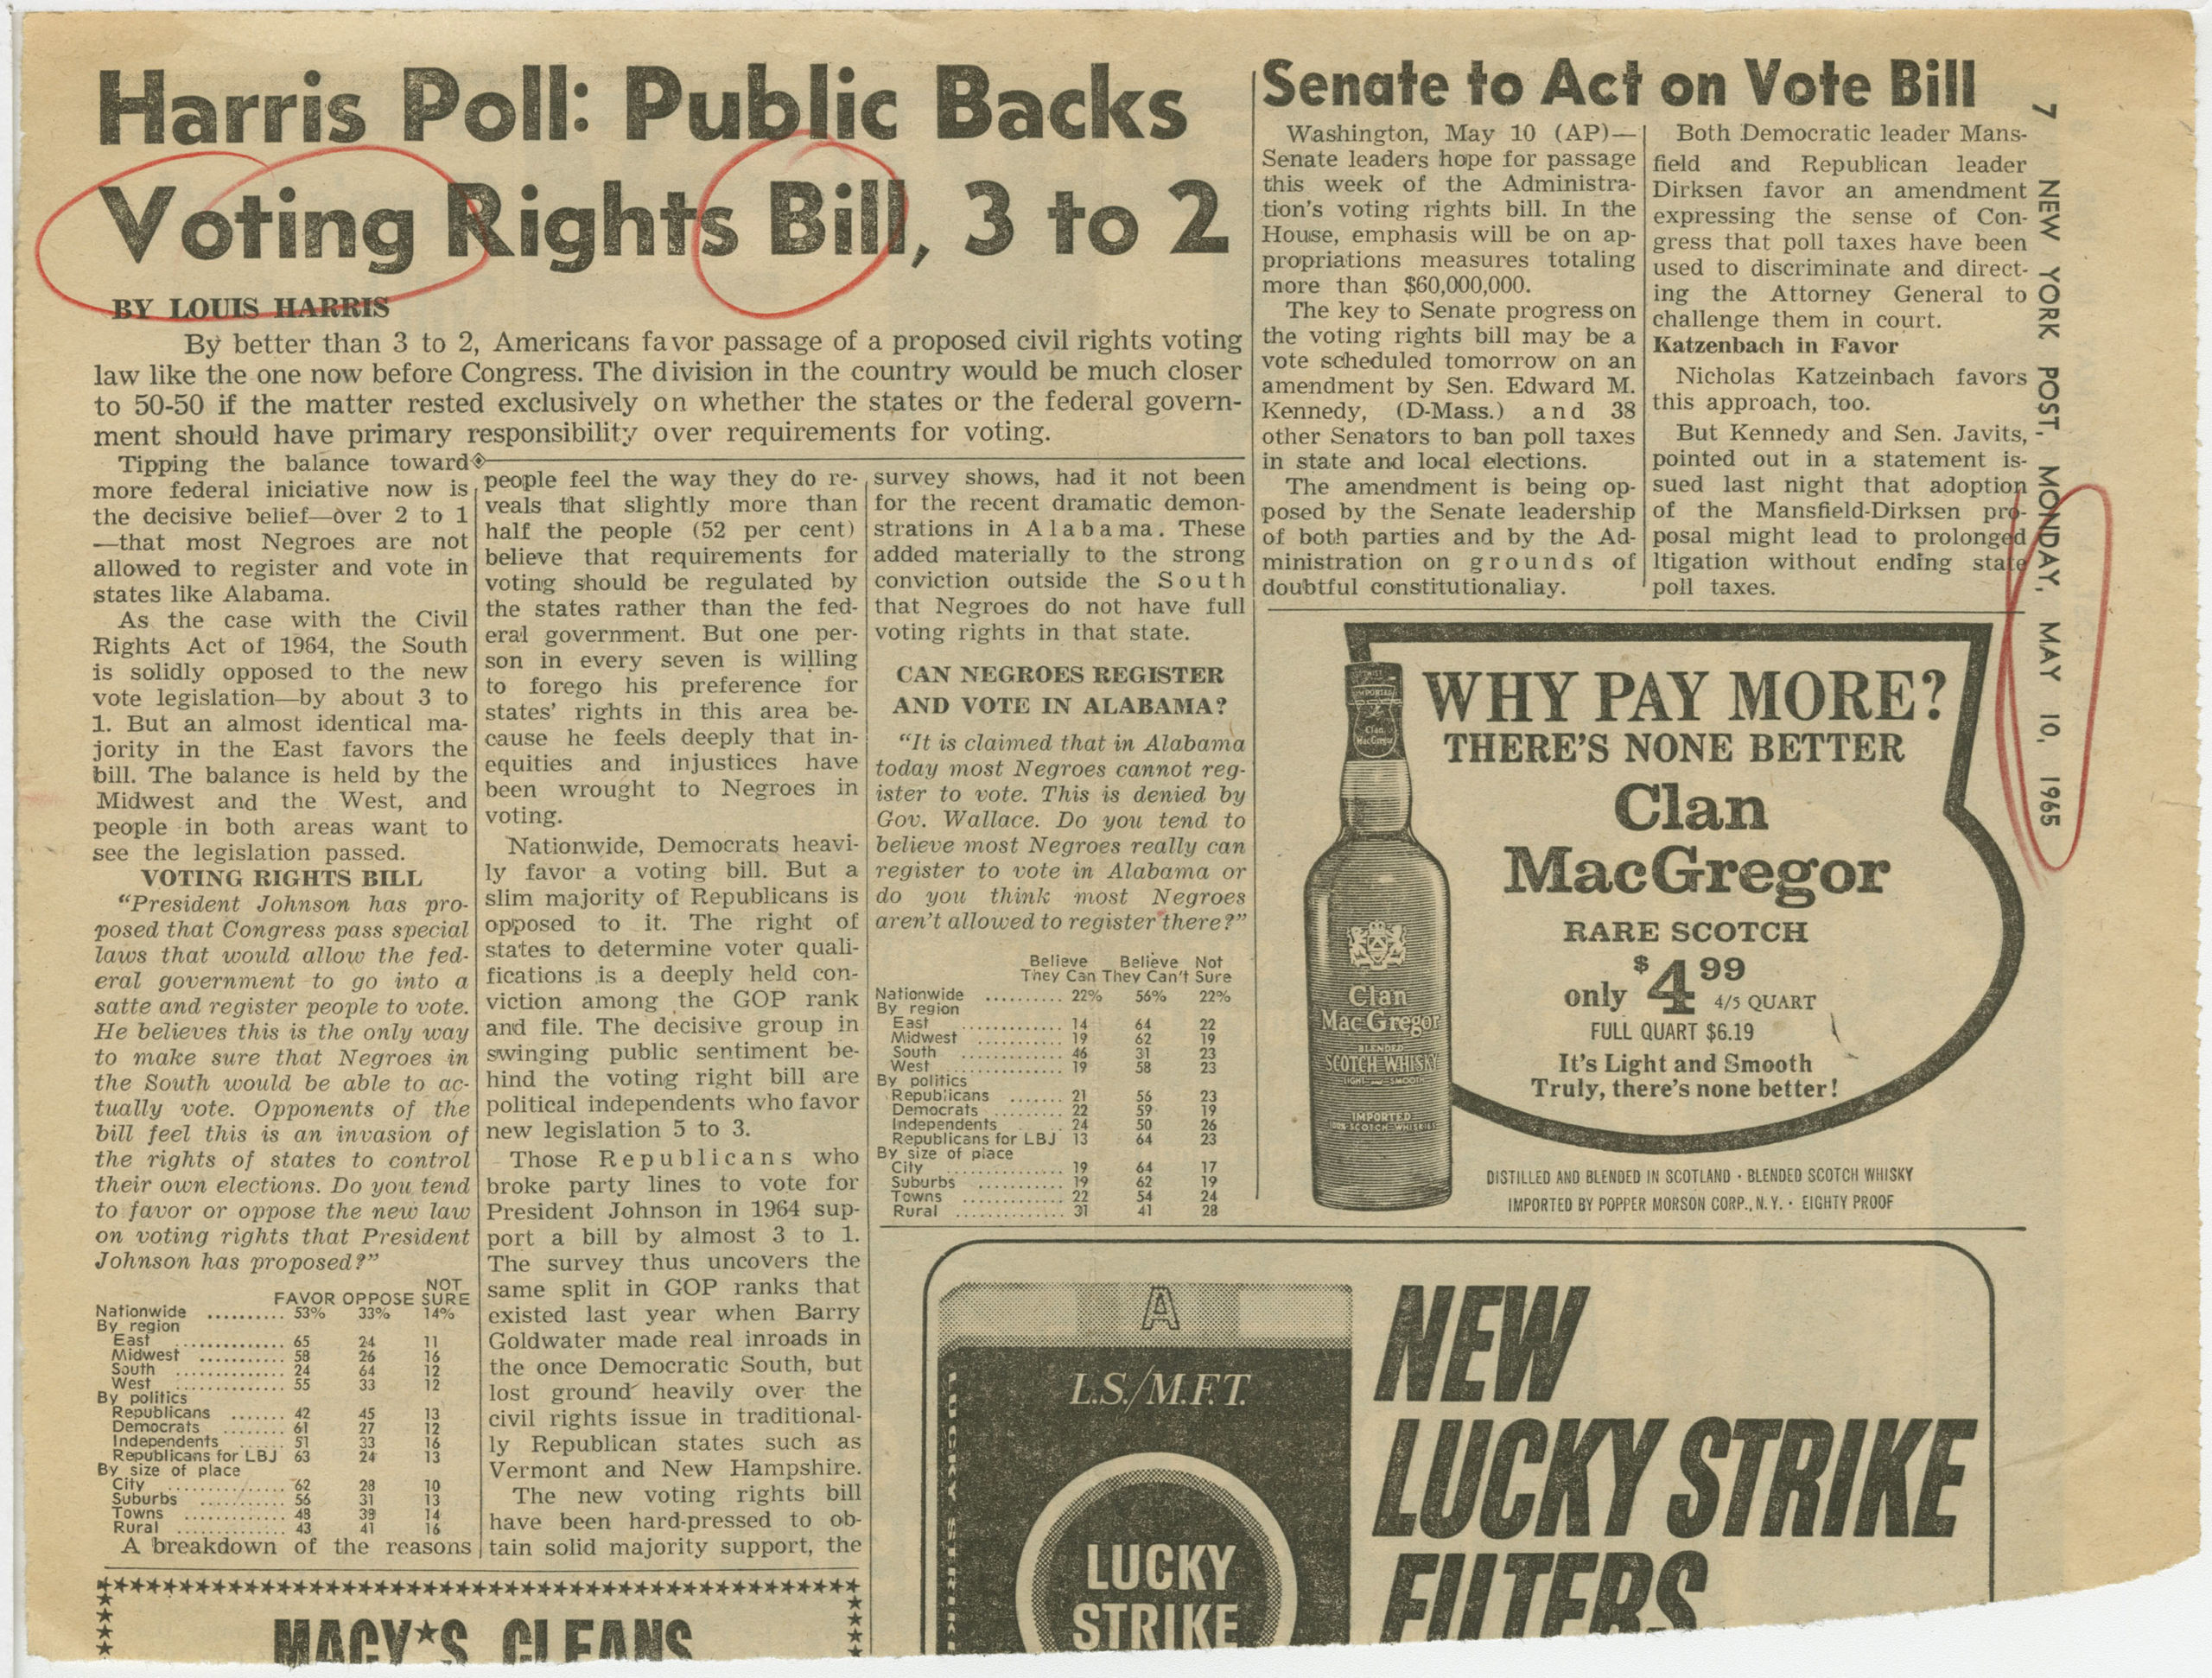 Harris Poll: Public Backs Voting Rights Bill, 3 to 2, Louis Harris; New York Post, 1965 May 10, Johnson Publishing Company Clippings File Collection